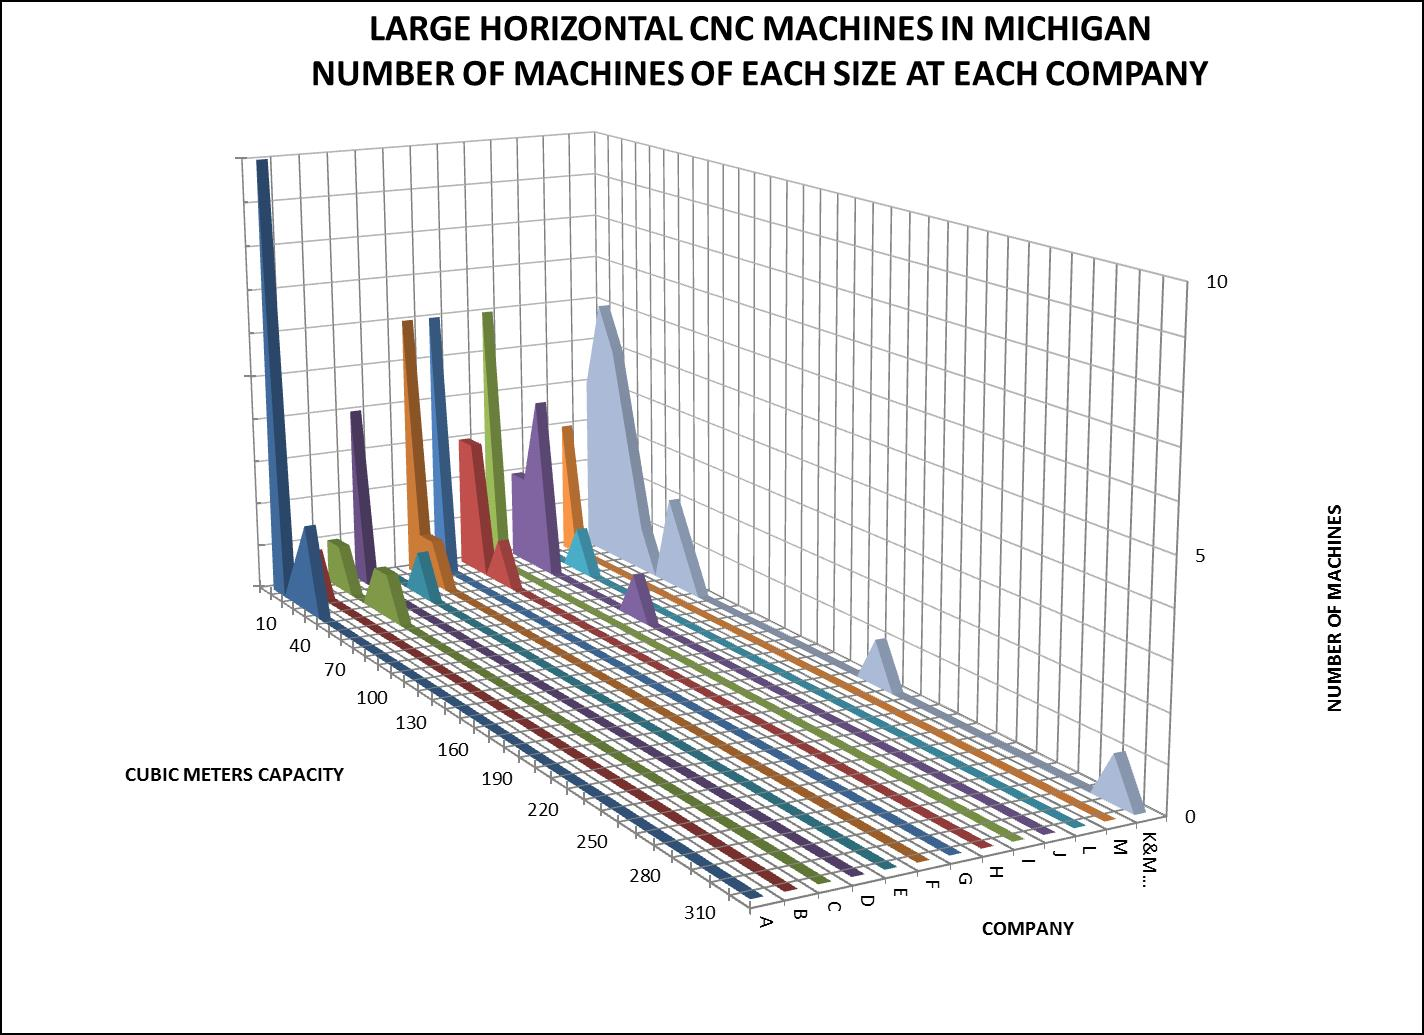 Michigan Large Horizontal CNC Machines by Number of Machines at Each Company